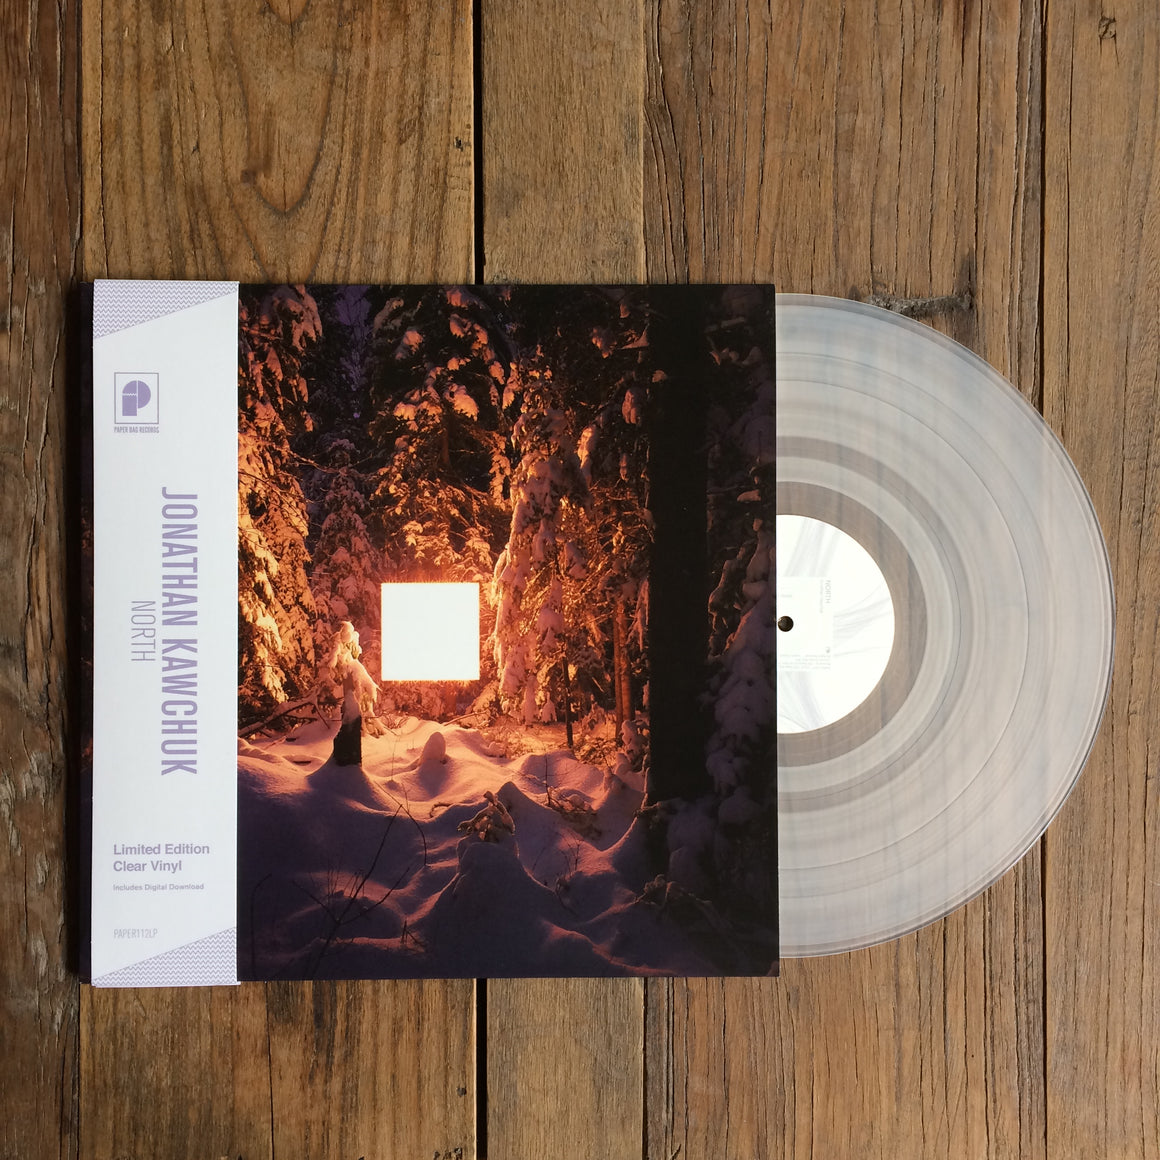 North [Limited Edition Clear Vinyl]